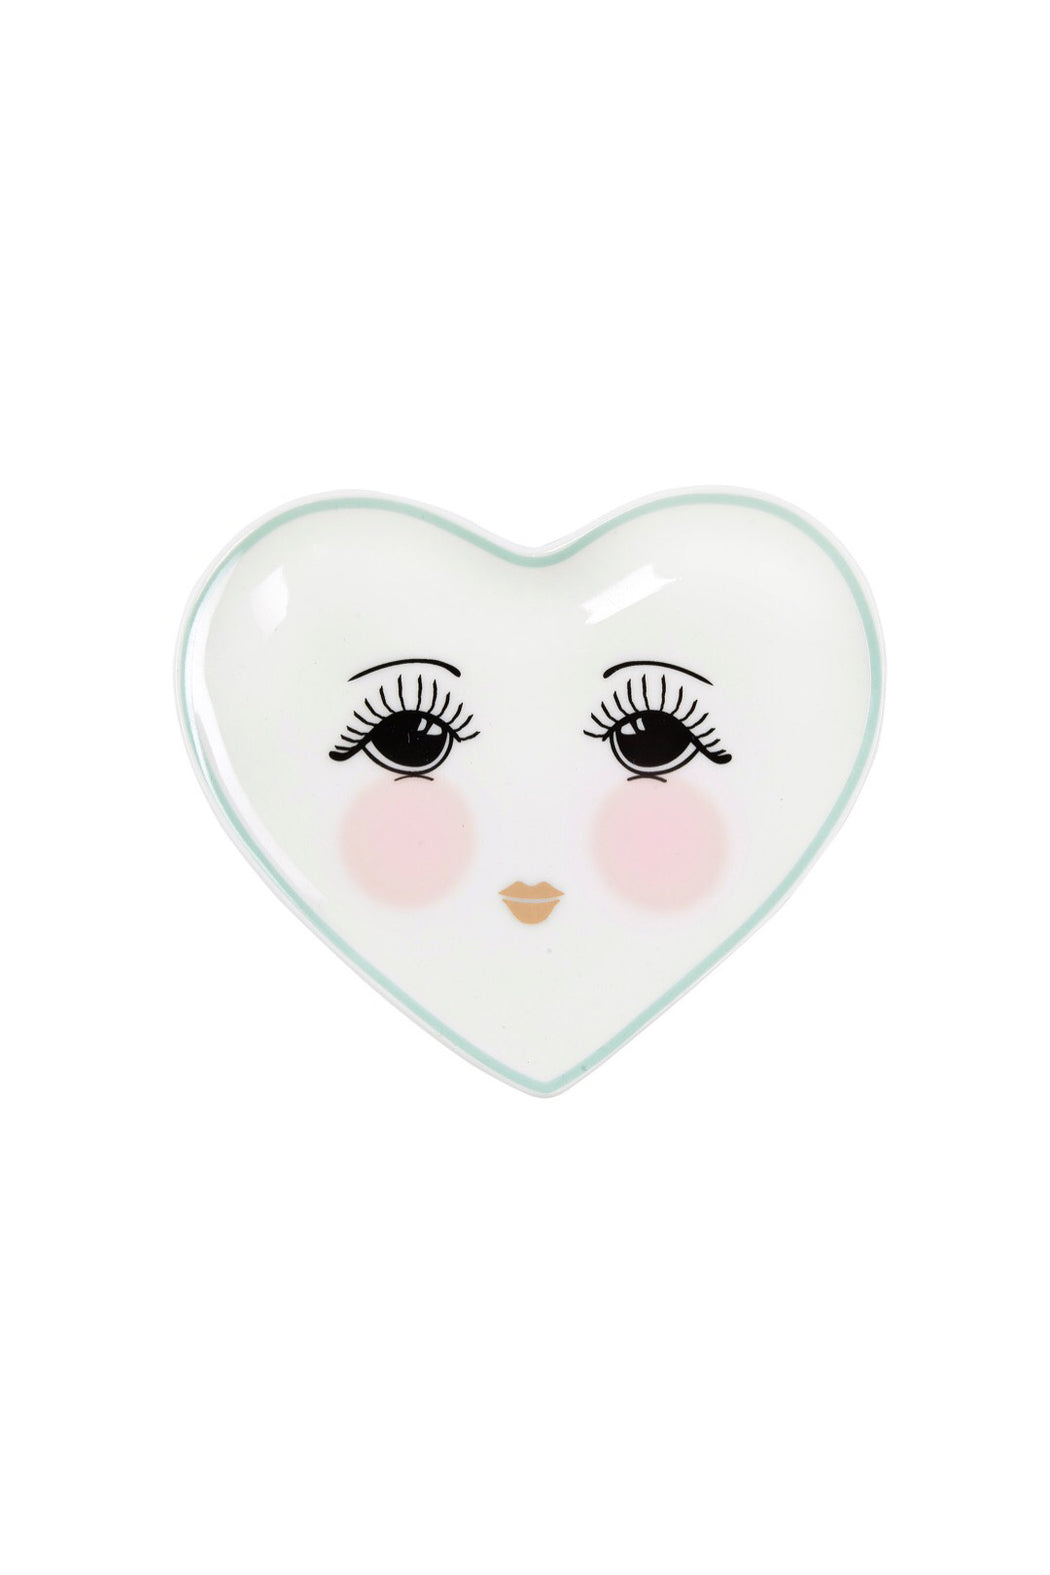 Candy Pretty Open Eyes Heart Shaped Plate